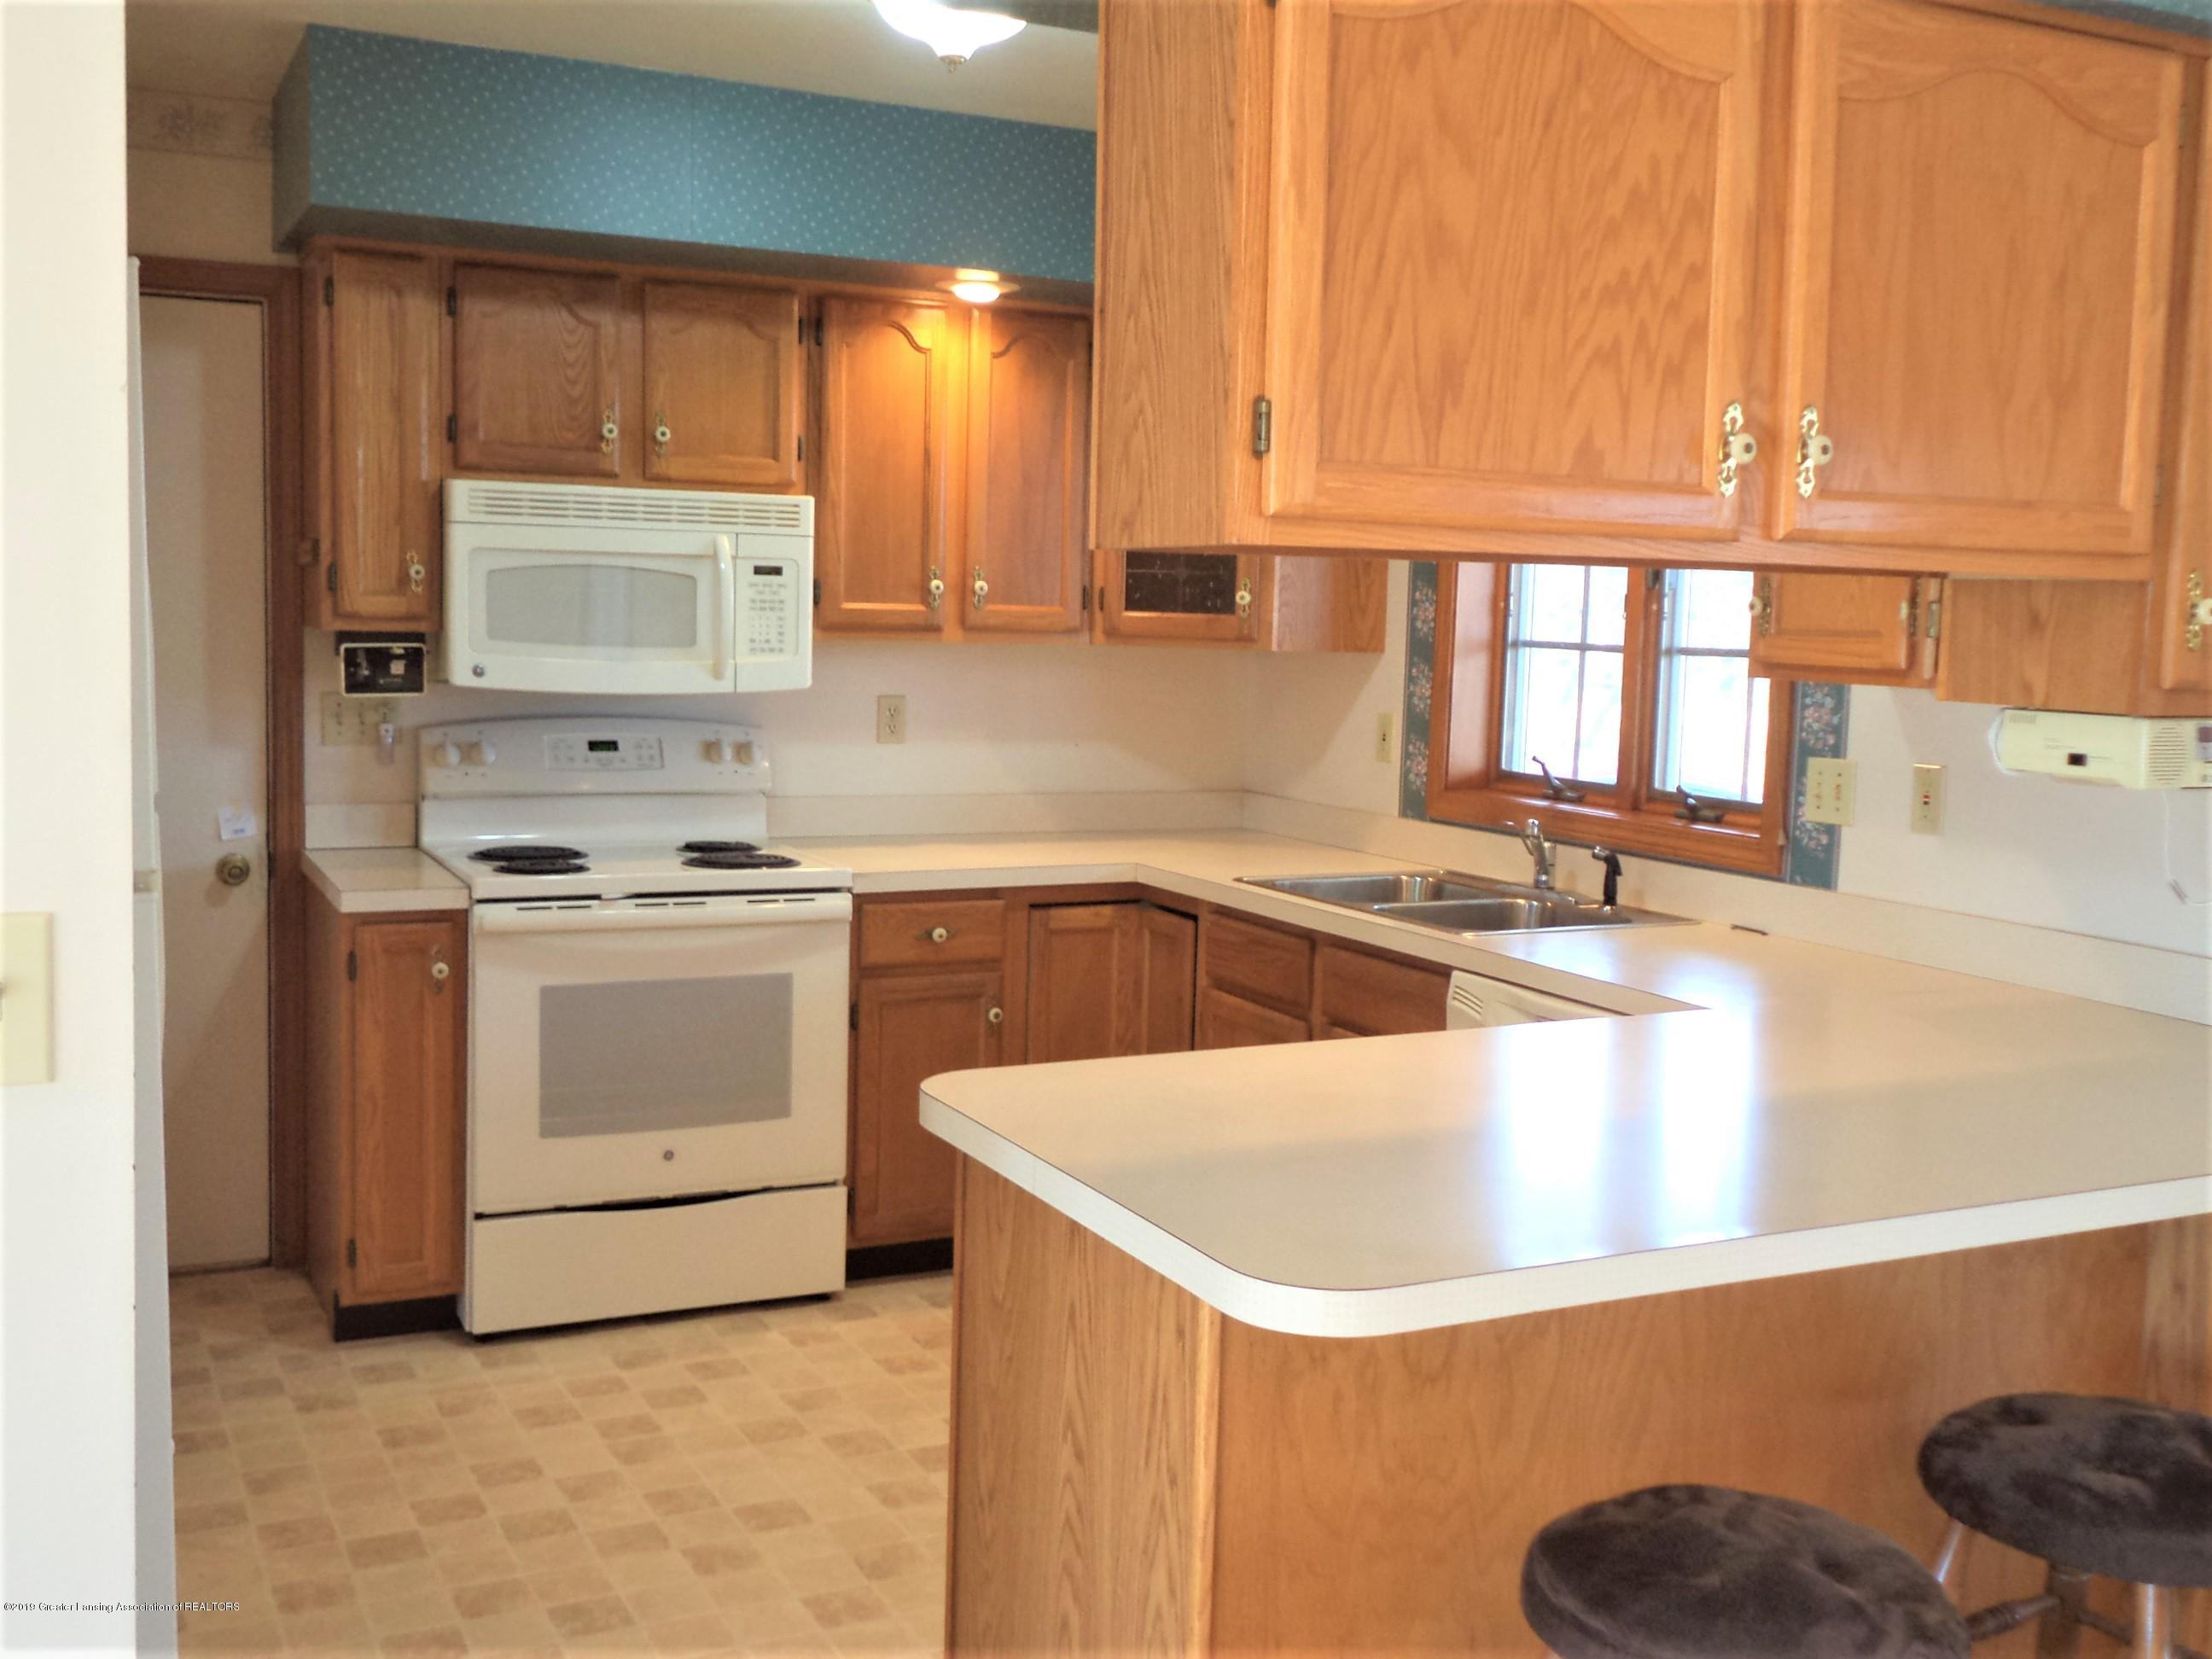 5535 W Parks Rd - Kitchen view 1 - 8